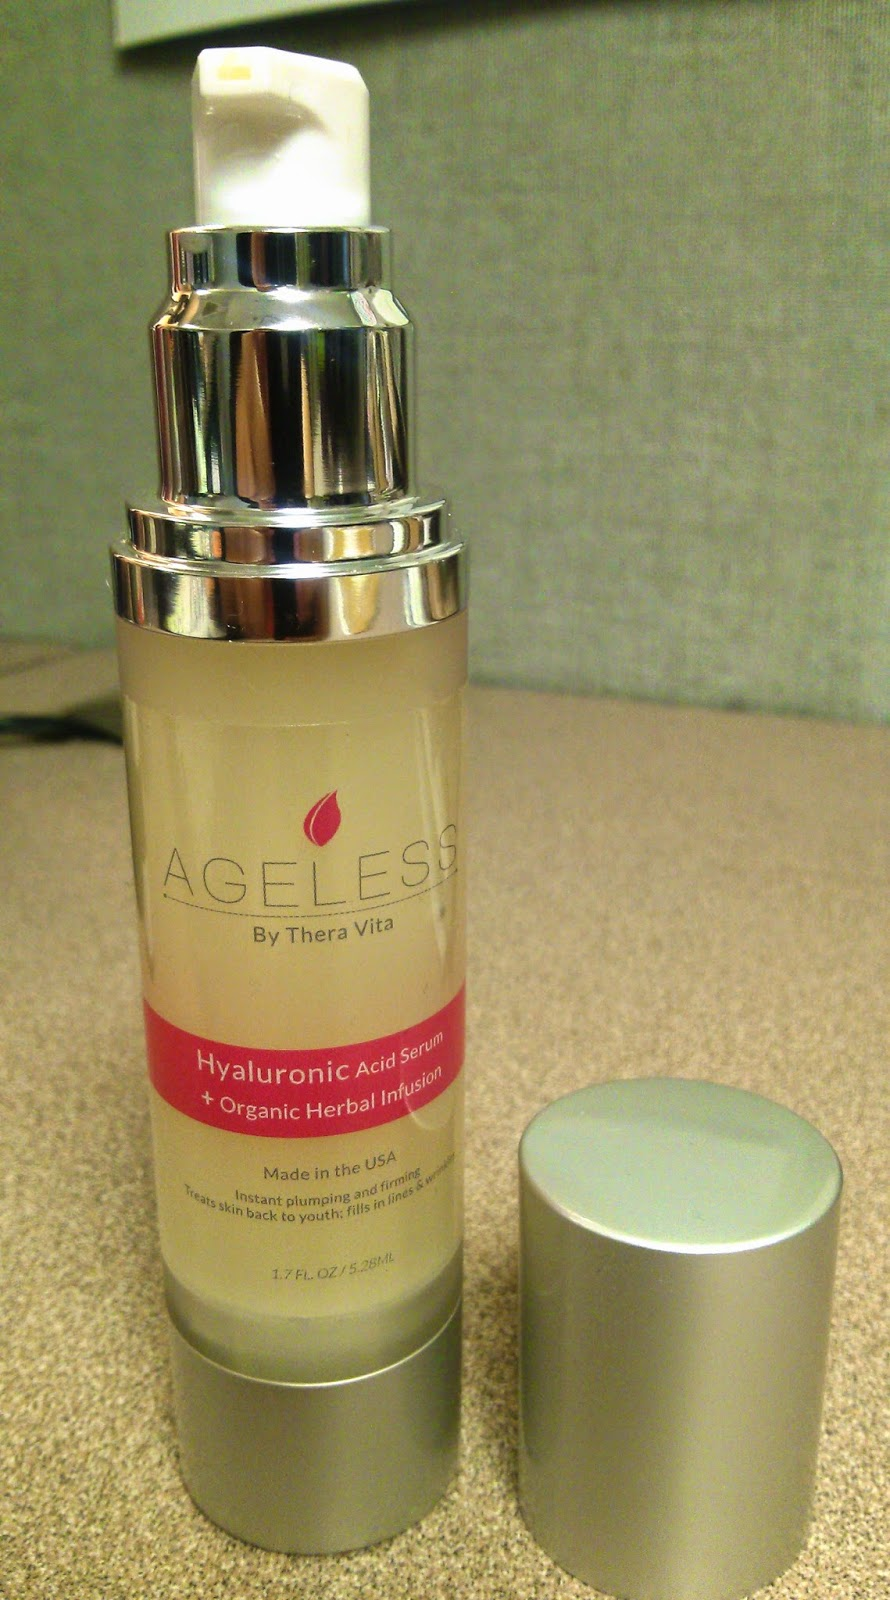 Ageless by Thera Vita Review